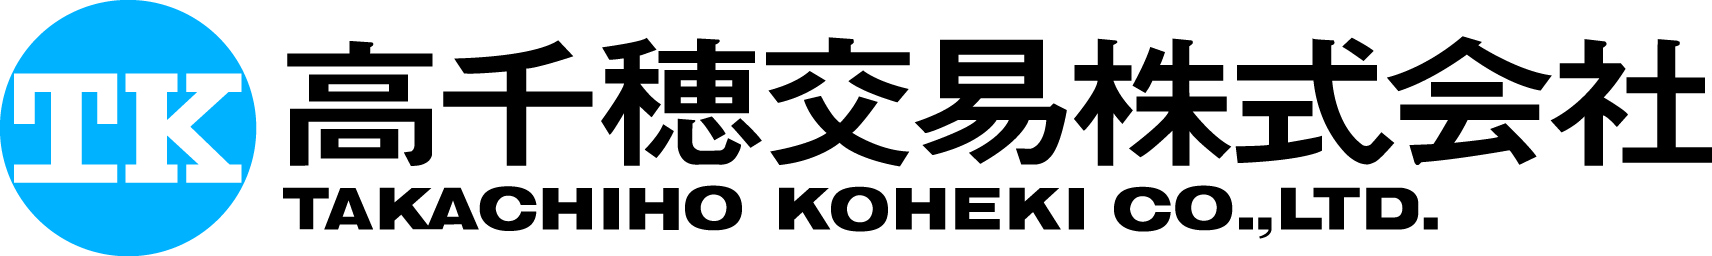 Takachiho Koheki Co., LTD